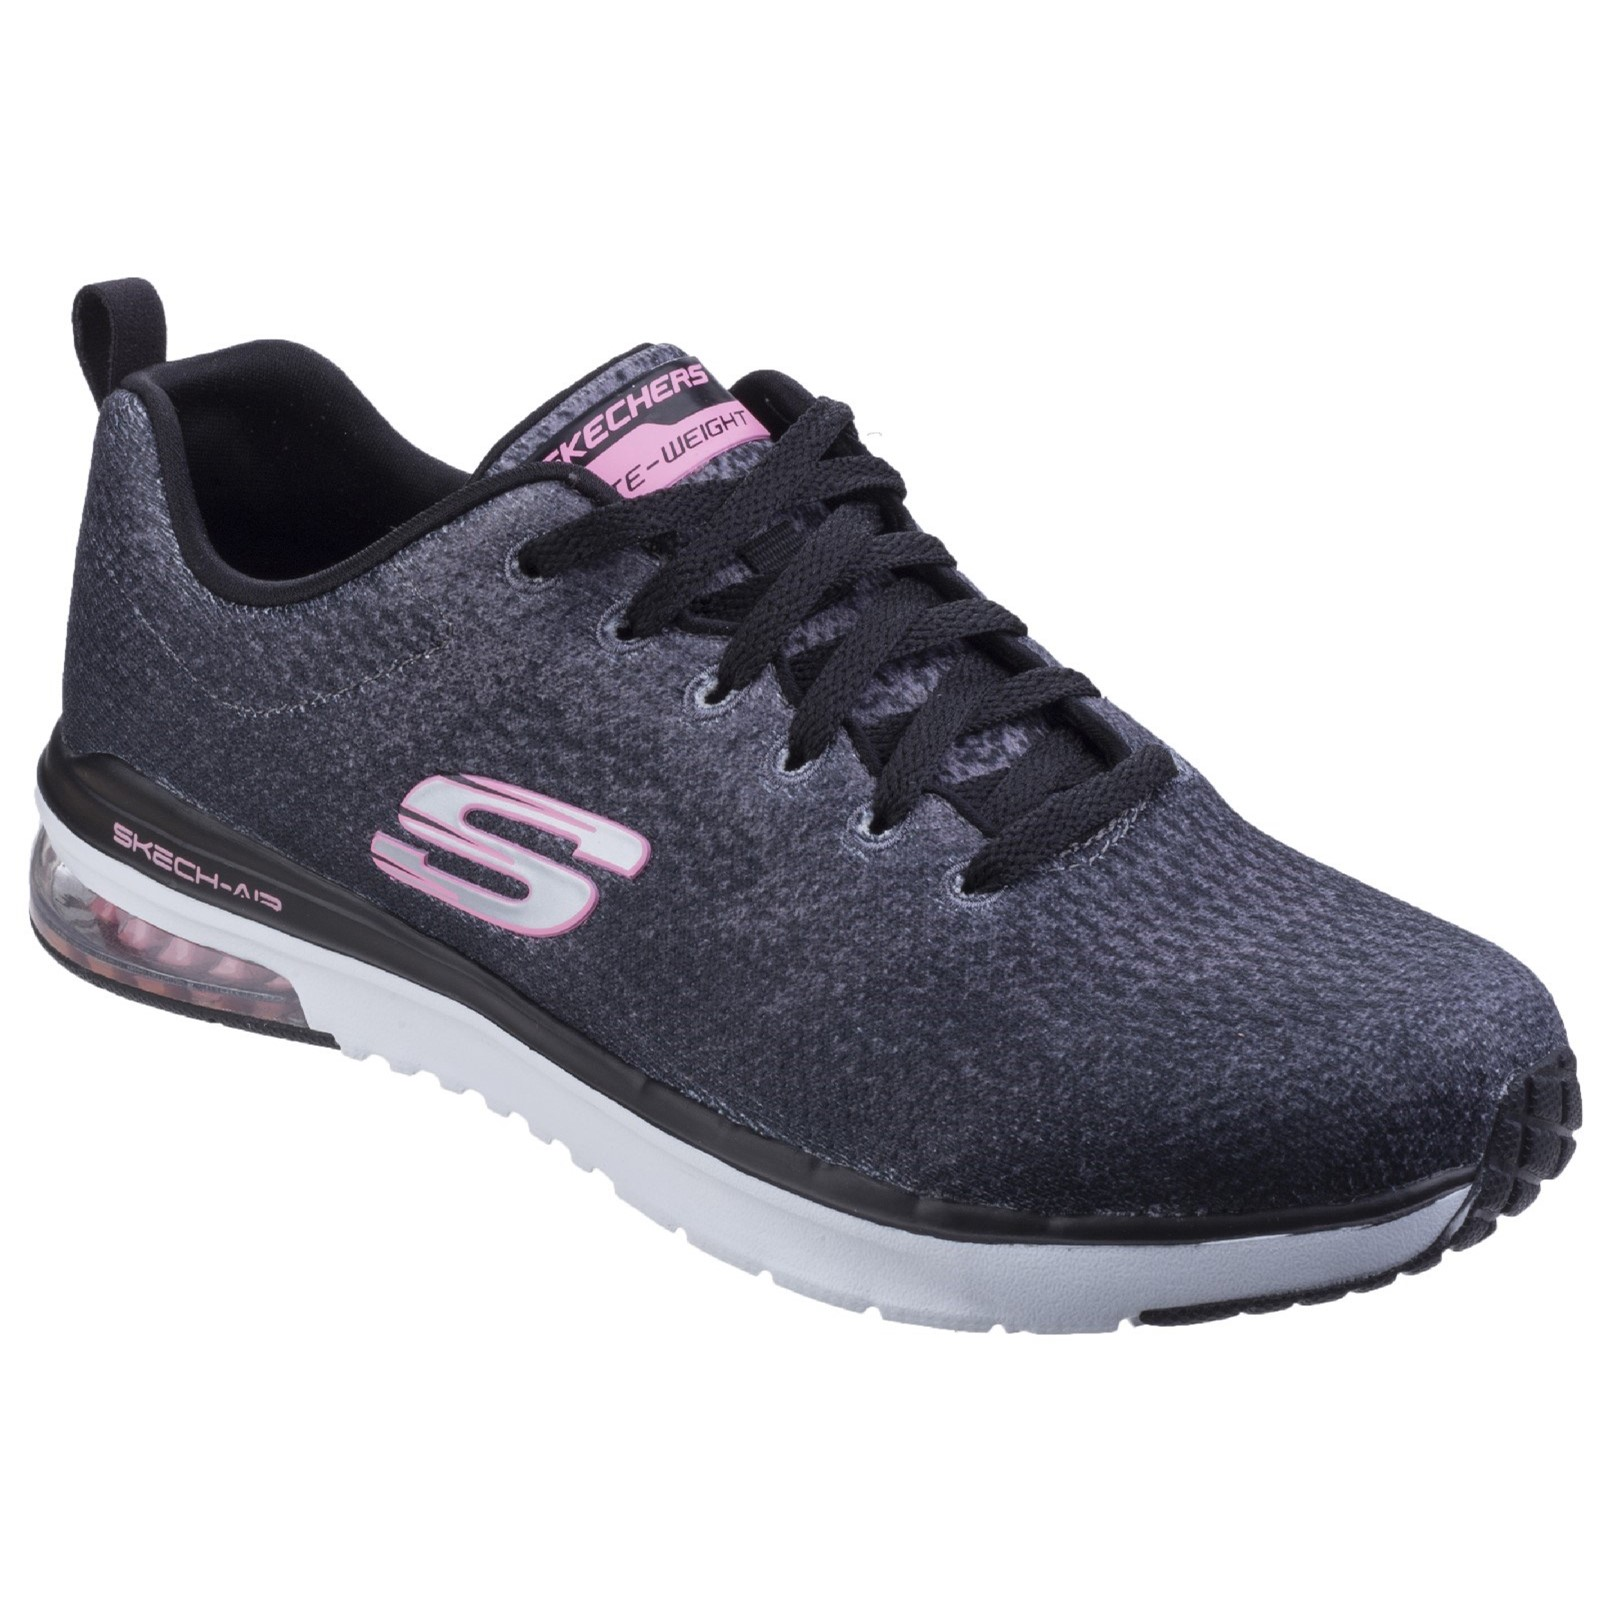 Calzature & Accessori grigi per donna Skechers Skech Air